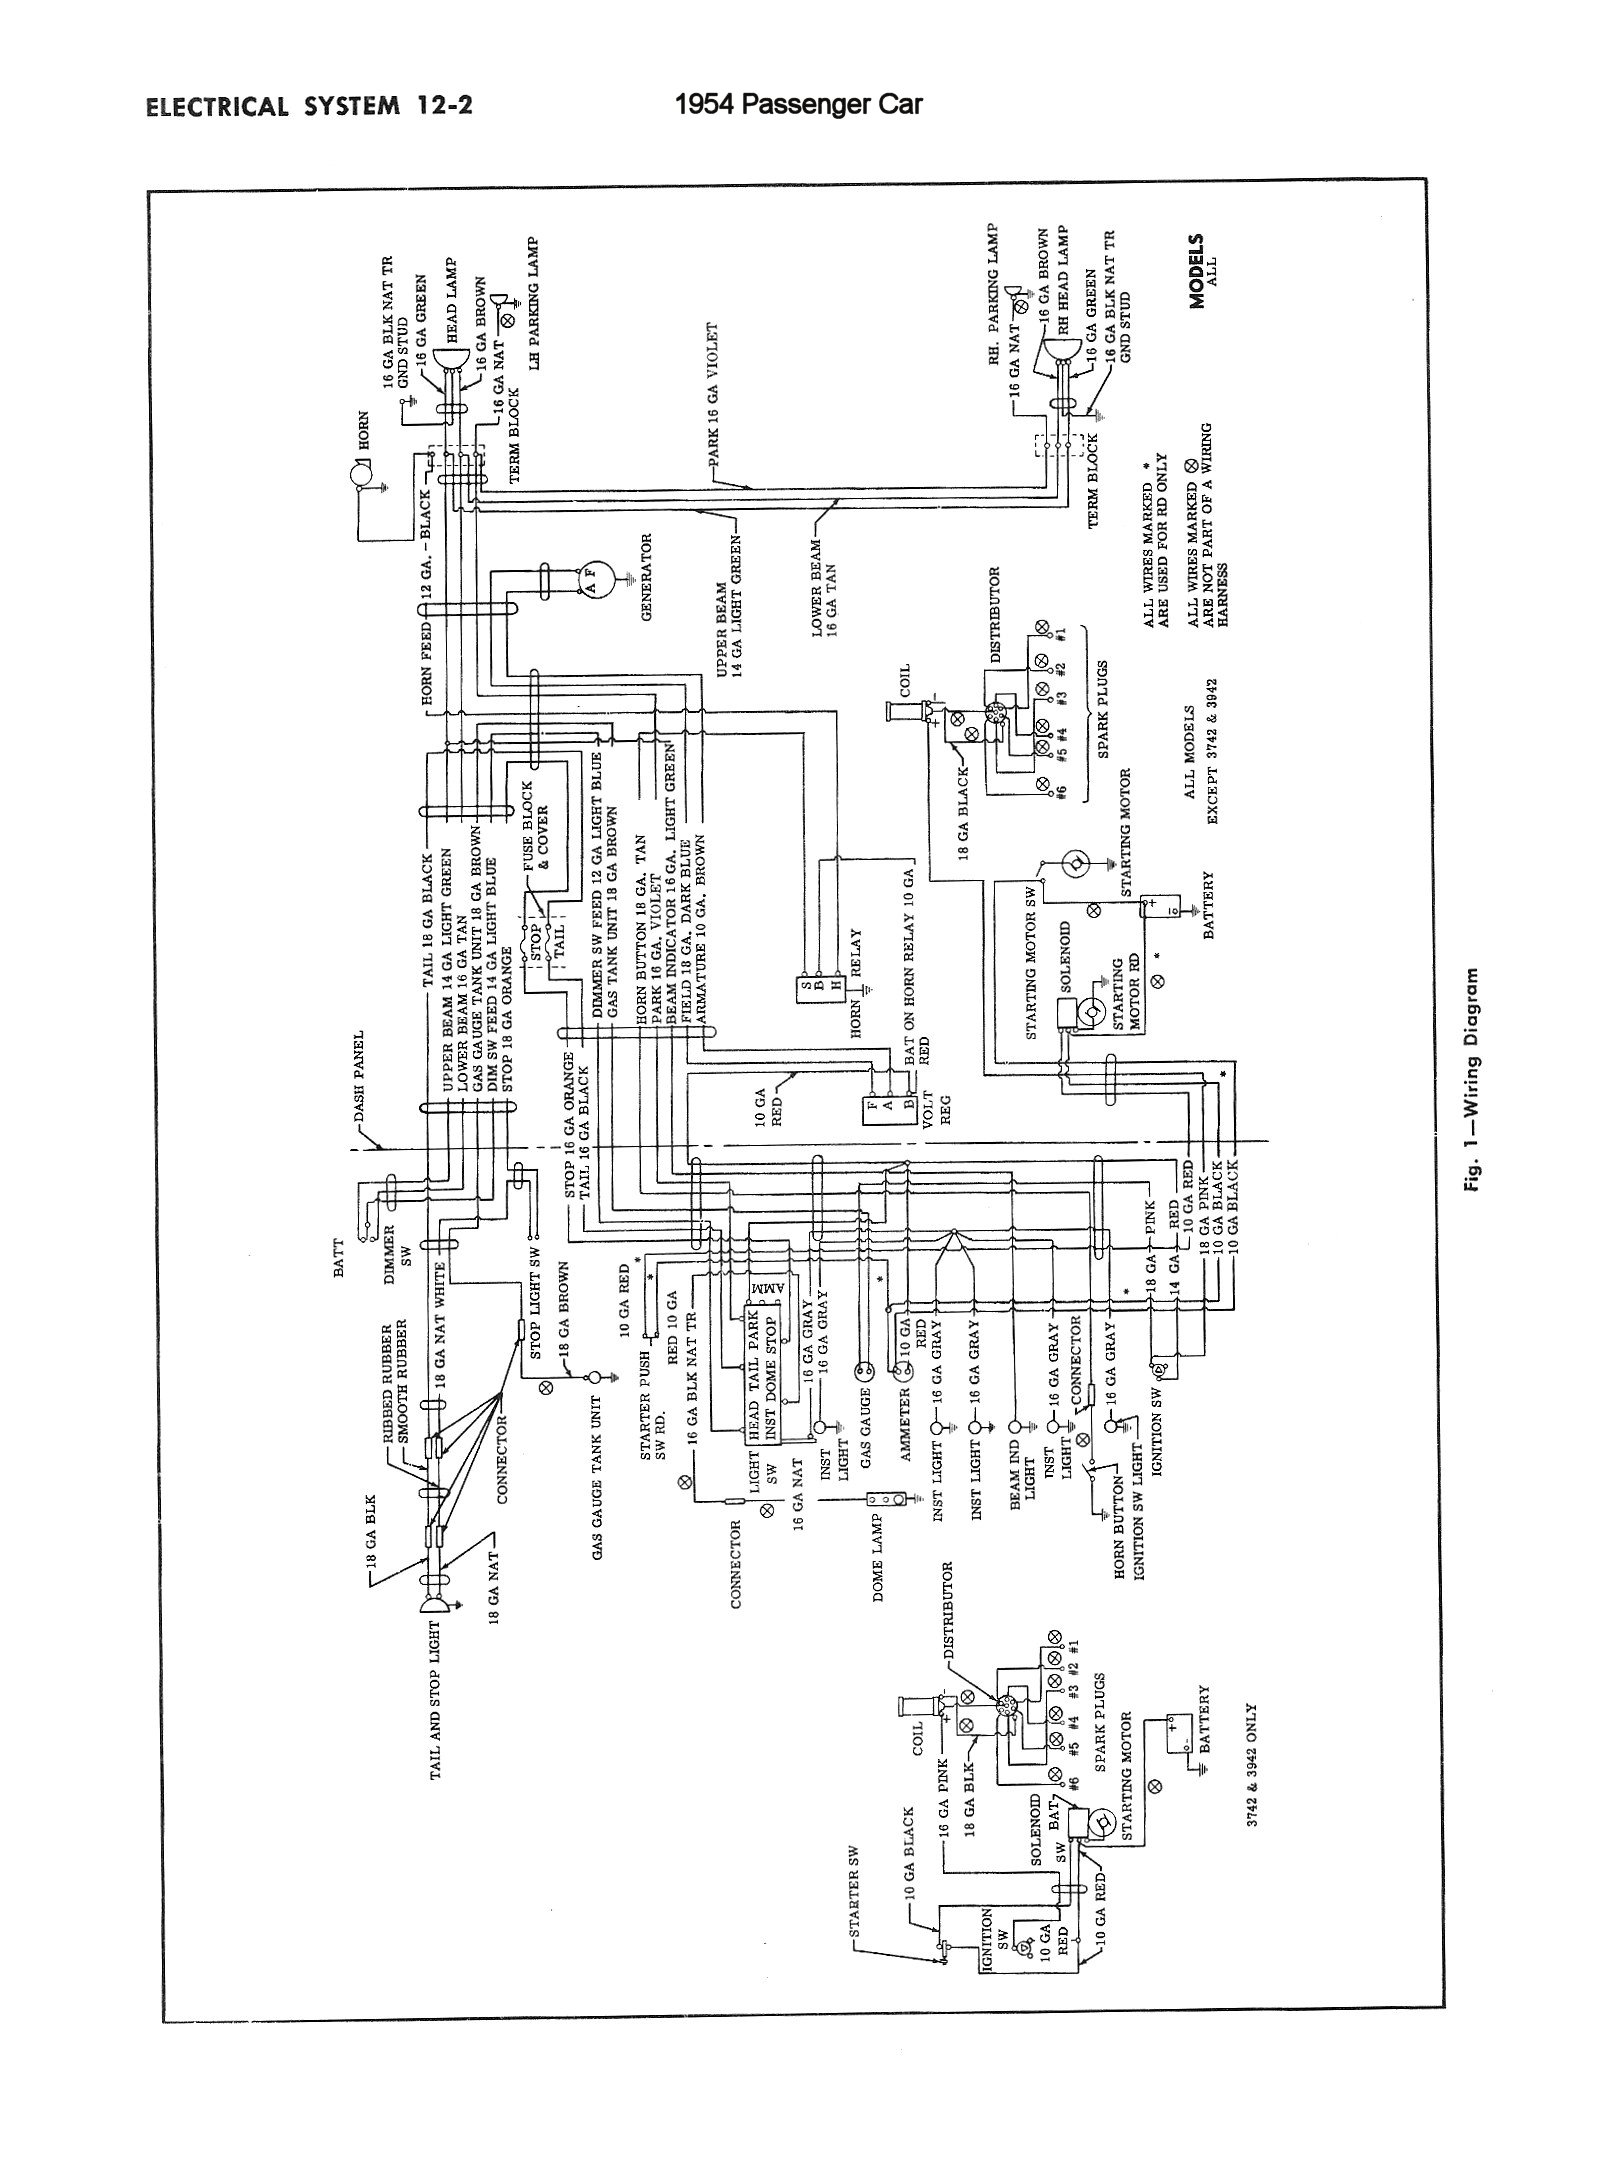 1957 chevy truck wiring diagram tattoos